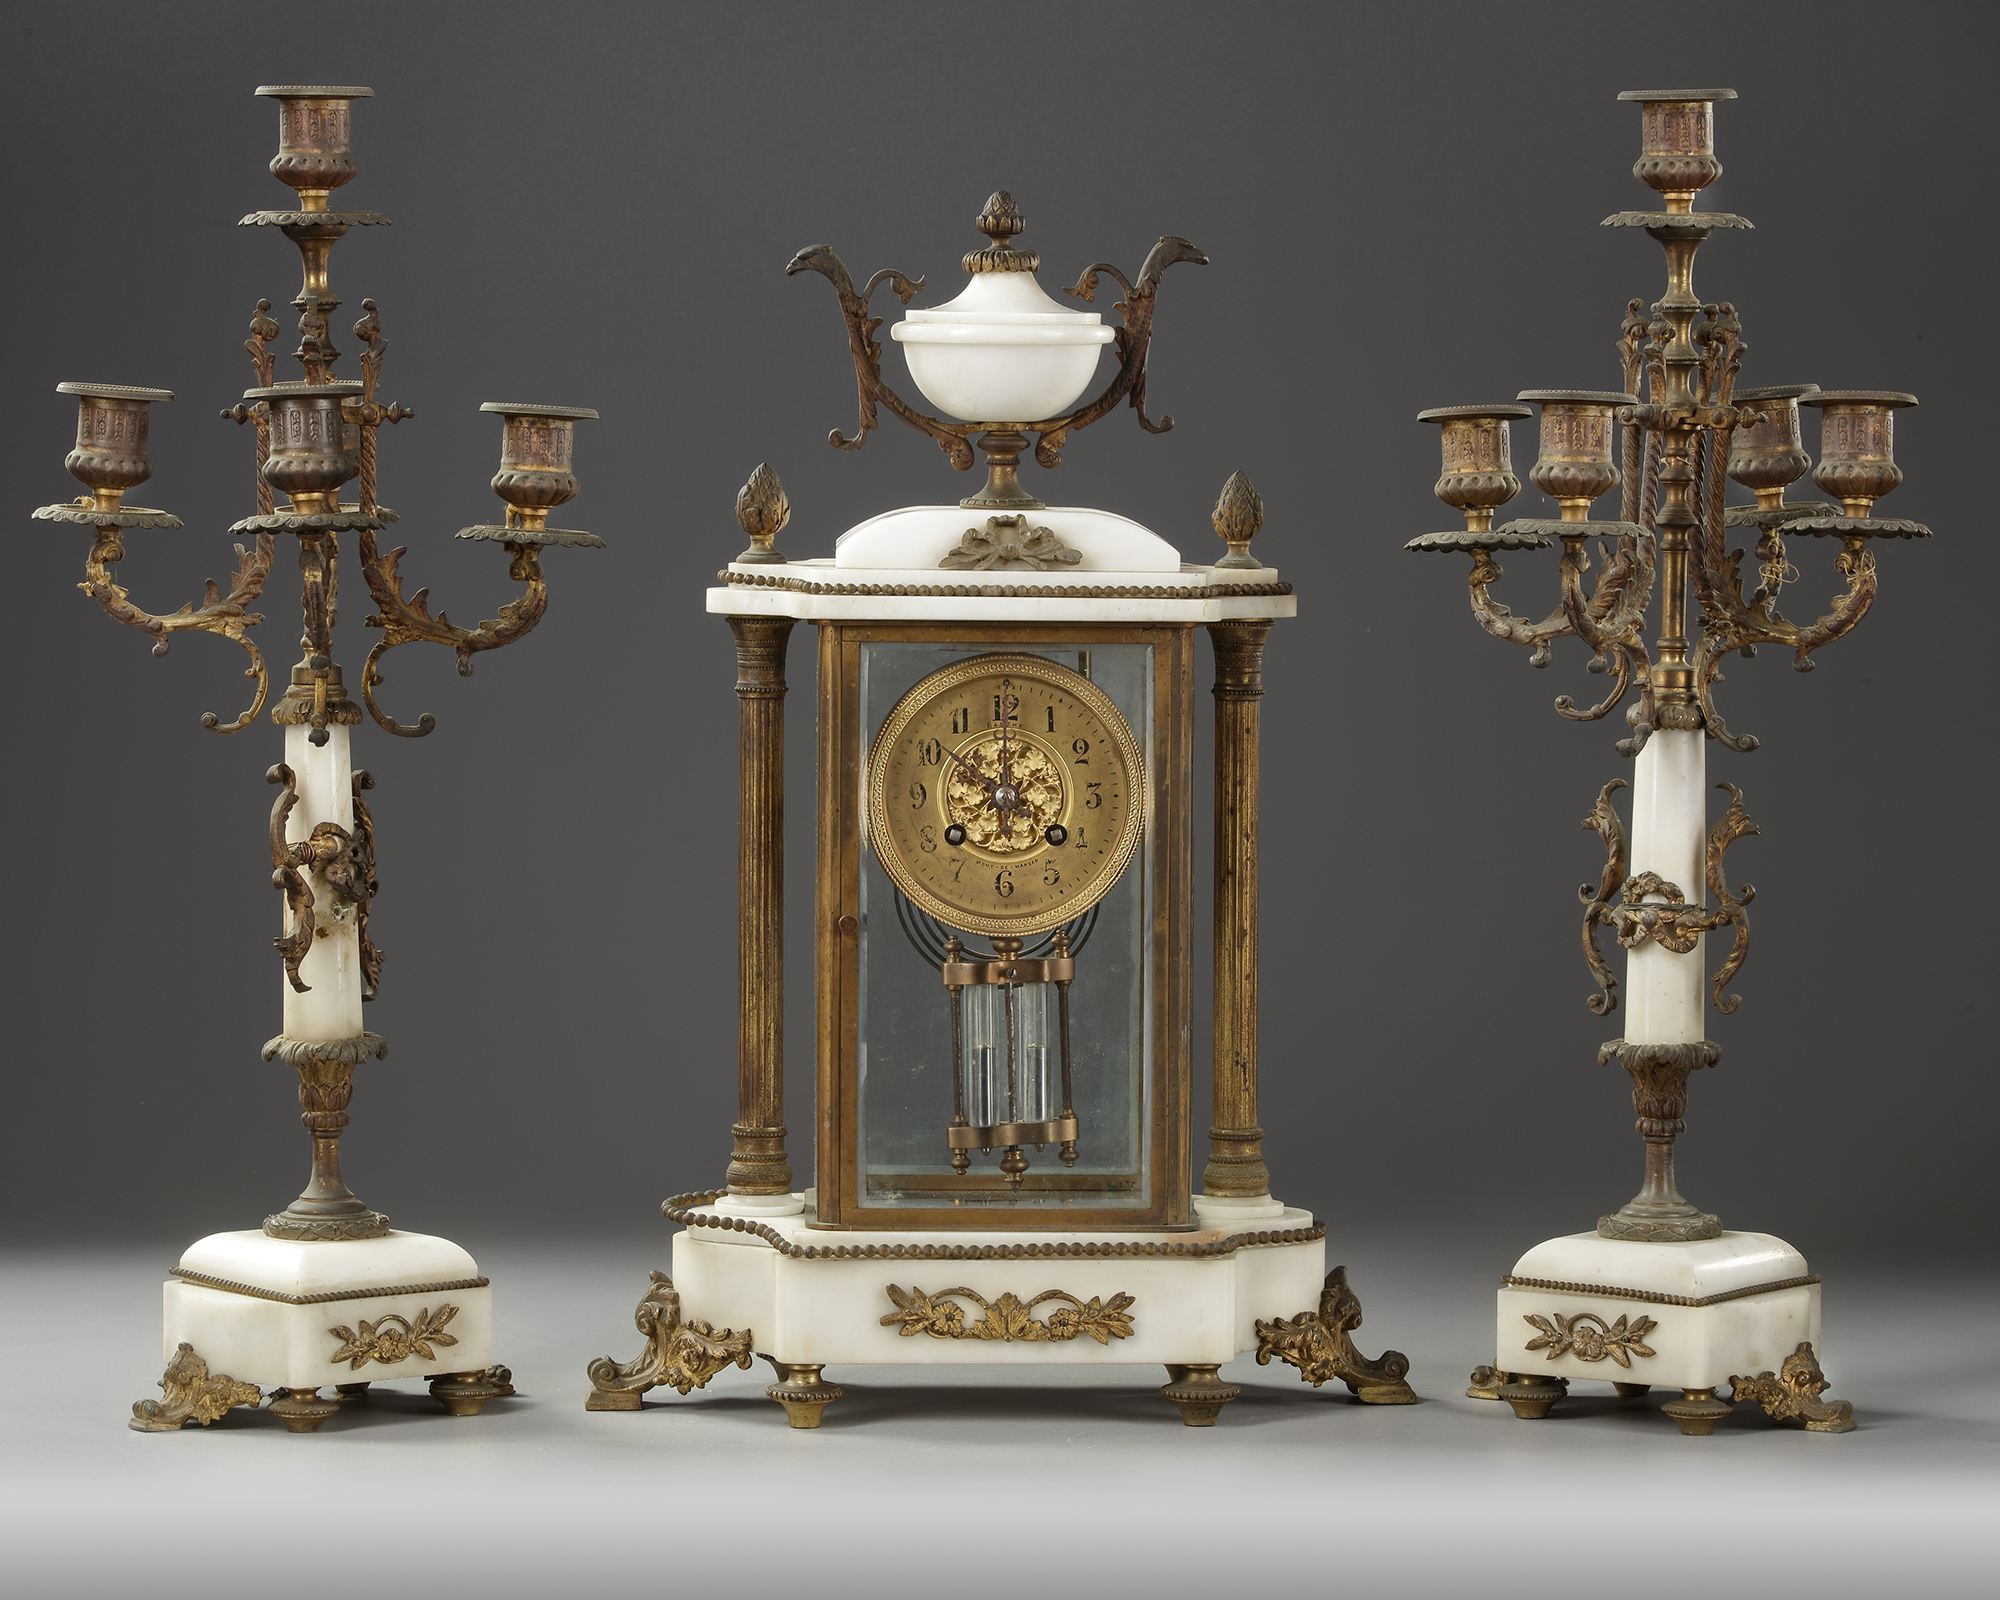 A FRENCH CLOCK SET, LATE 19TH CENTURY - Image 2 of 5